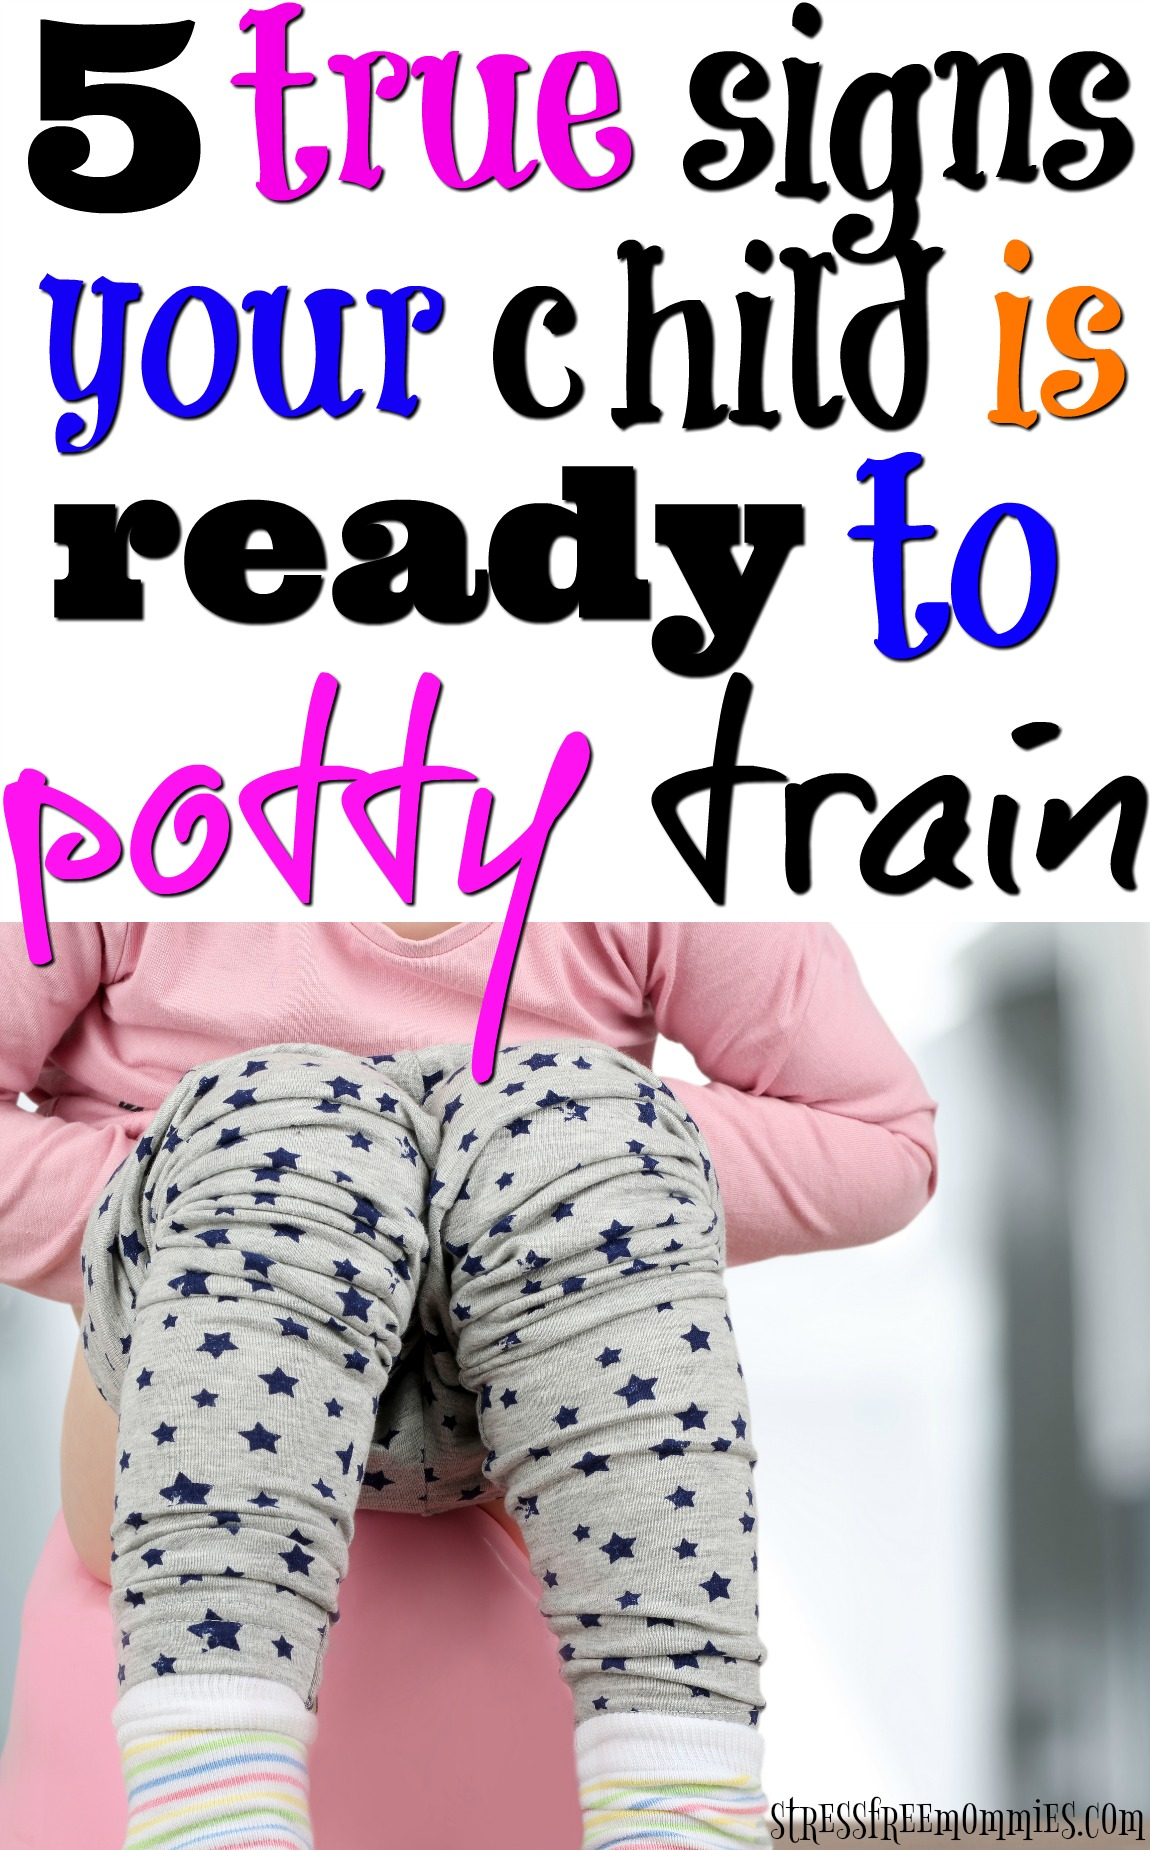 5 true signs your child is ready to potty train